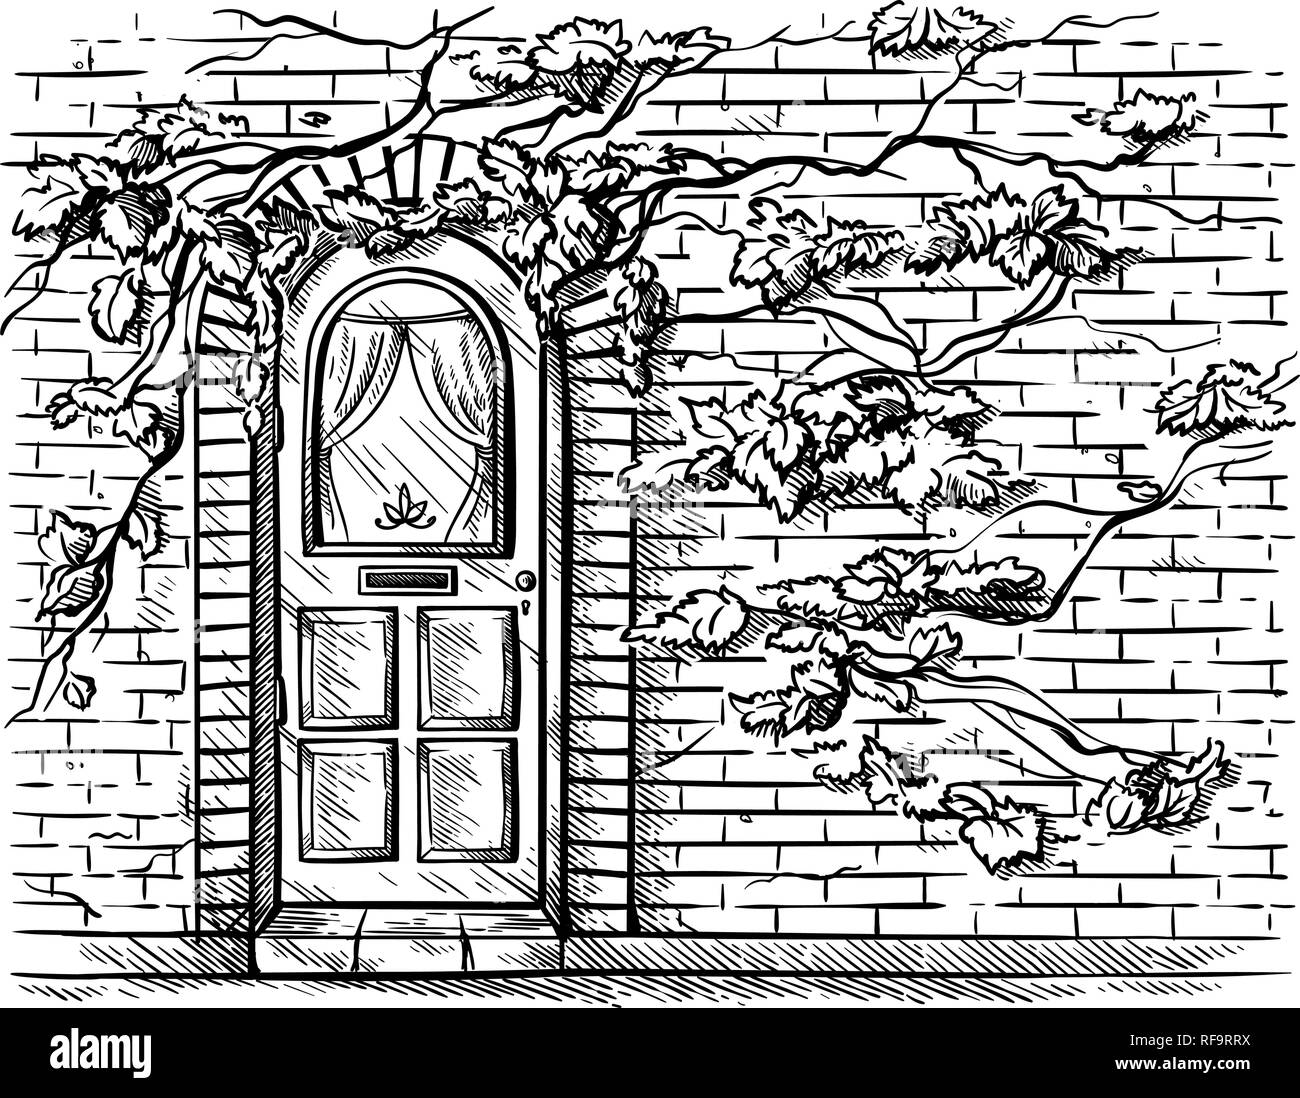 sketch hand drawn old double arched wooden door in brick grape braided wall vector illustration - Stock Image